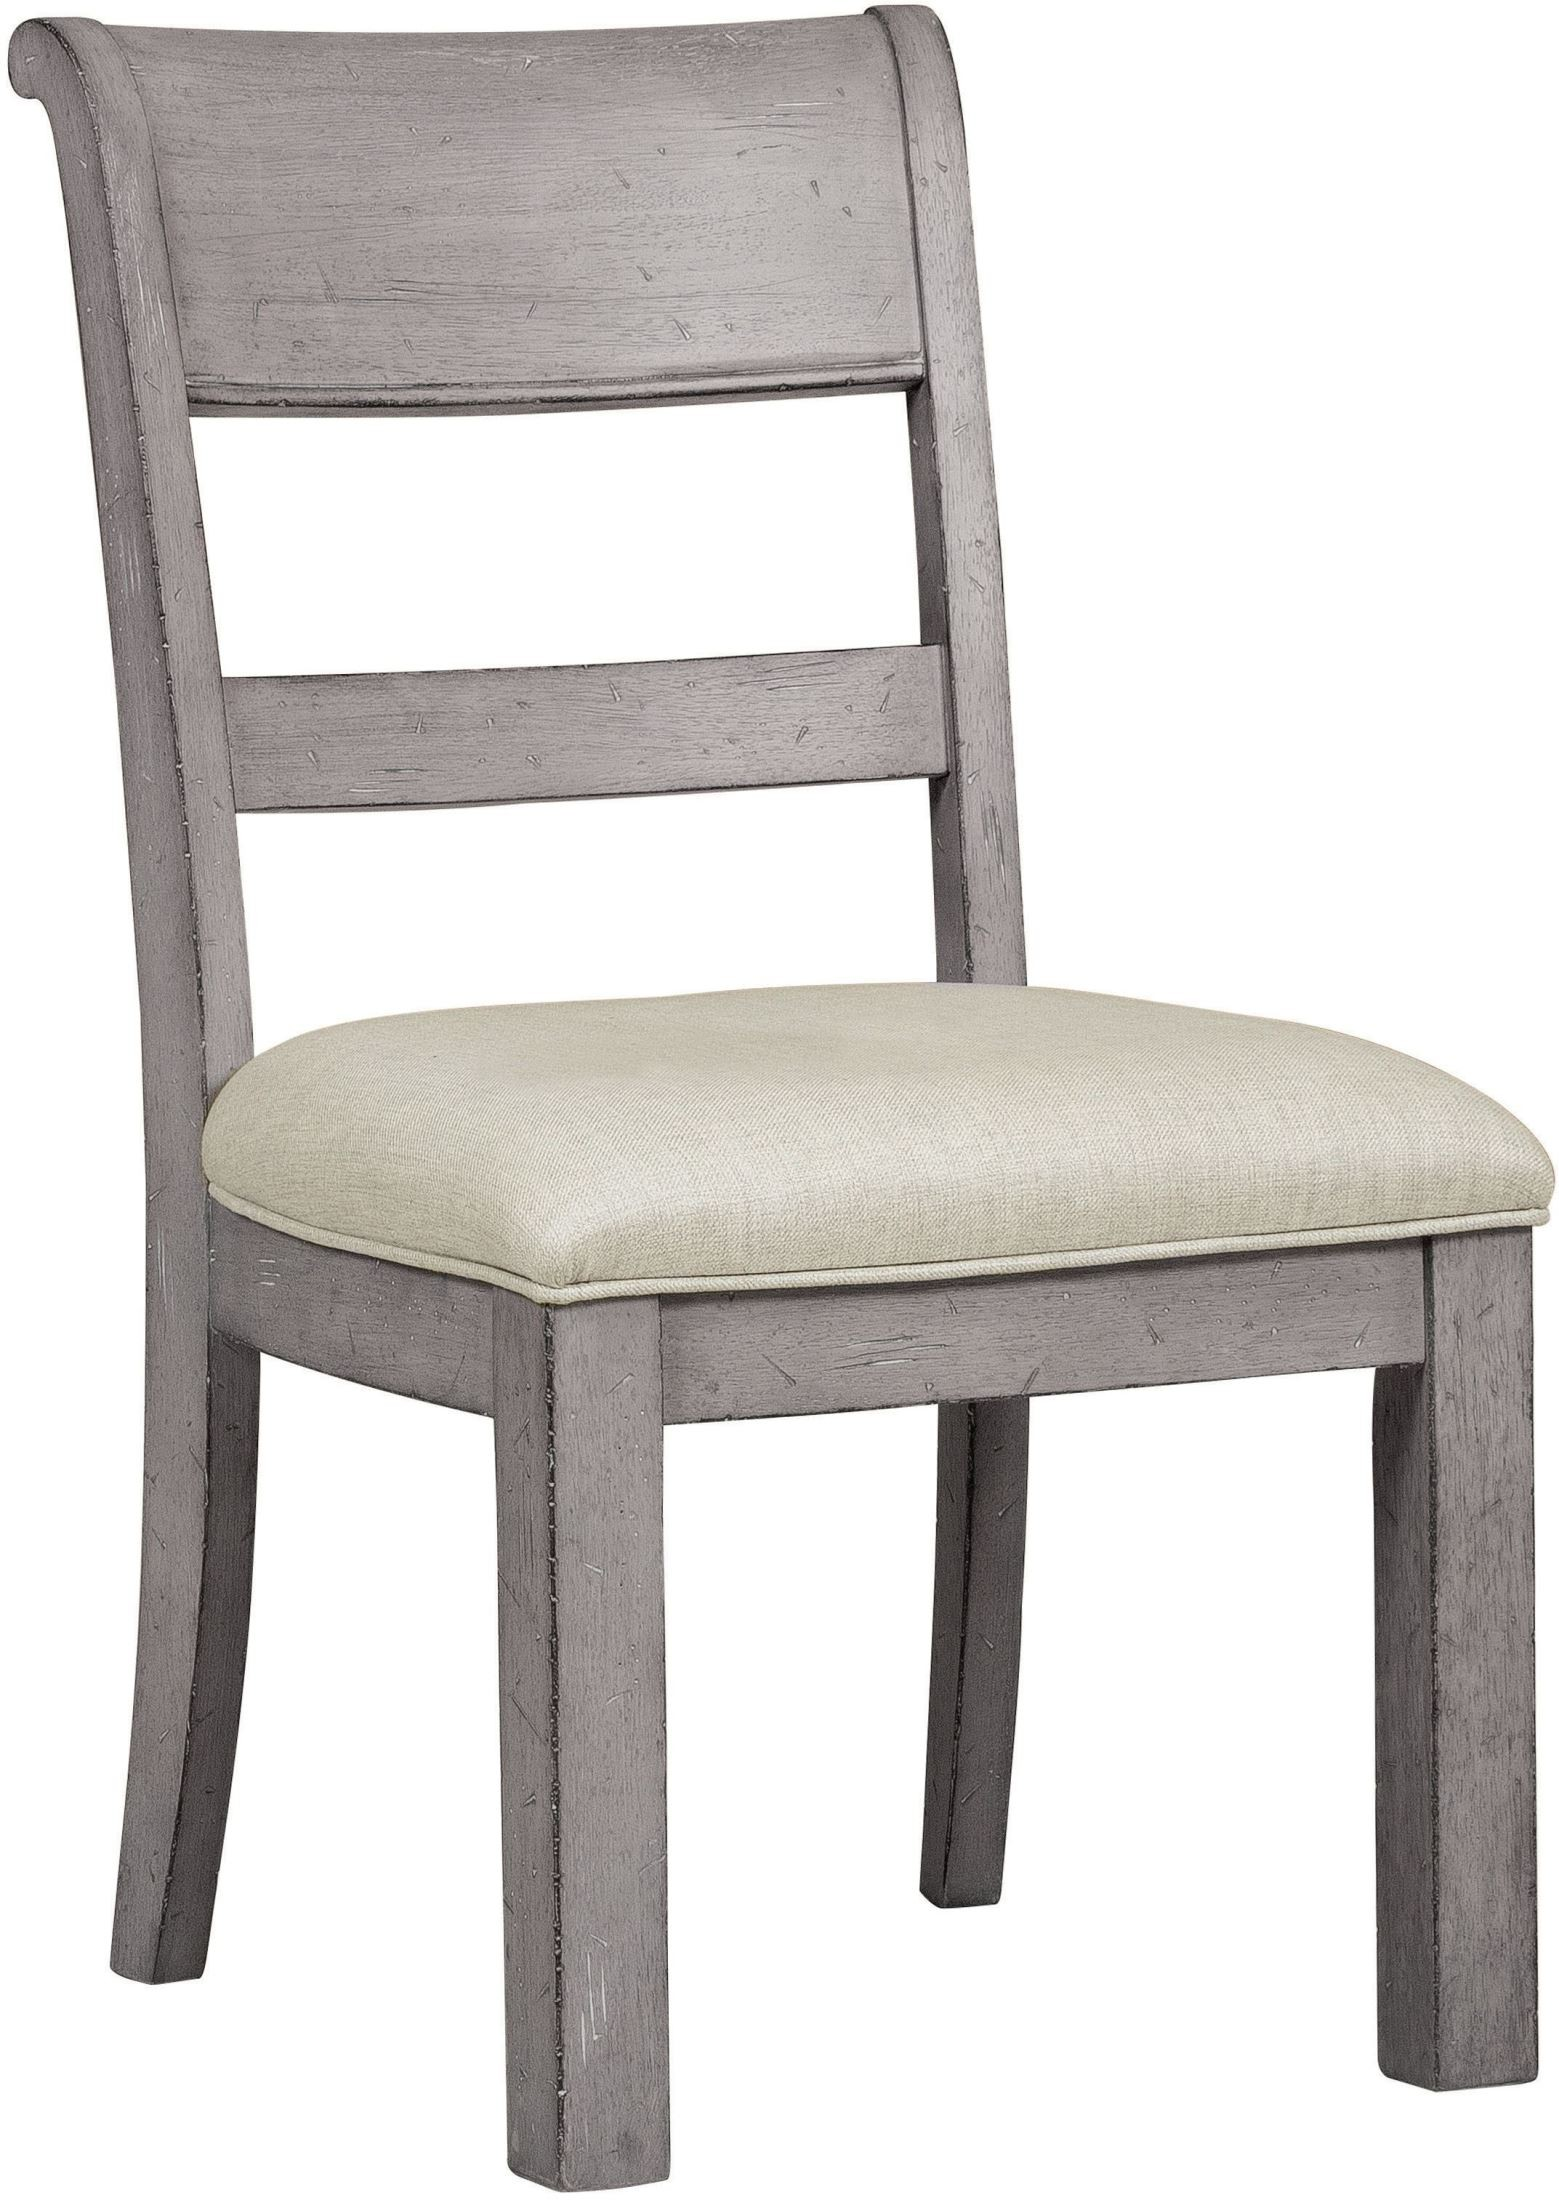 Prospect Hill Gray Side Chair S082 154 Samuel Lawrence